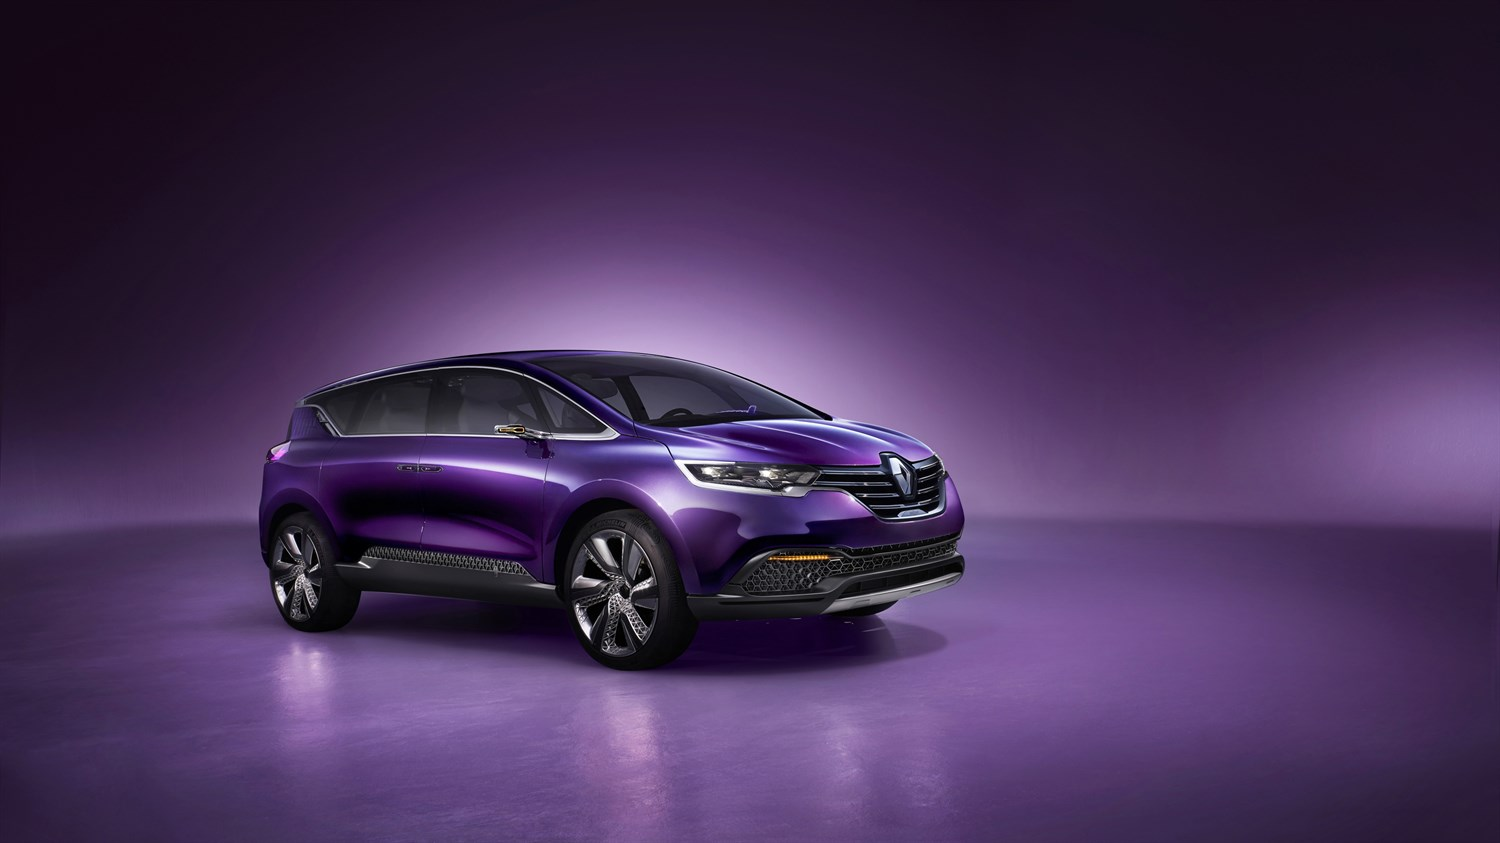 Renault INITIALE PARIS Concept - 3/4 front view of vehicle